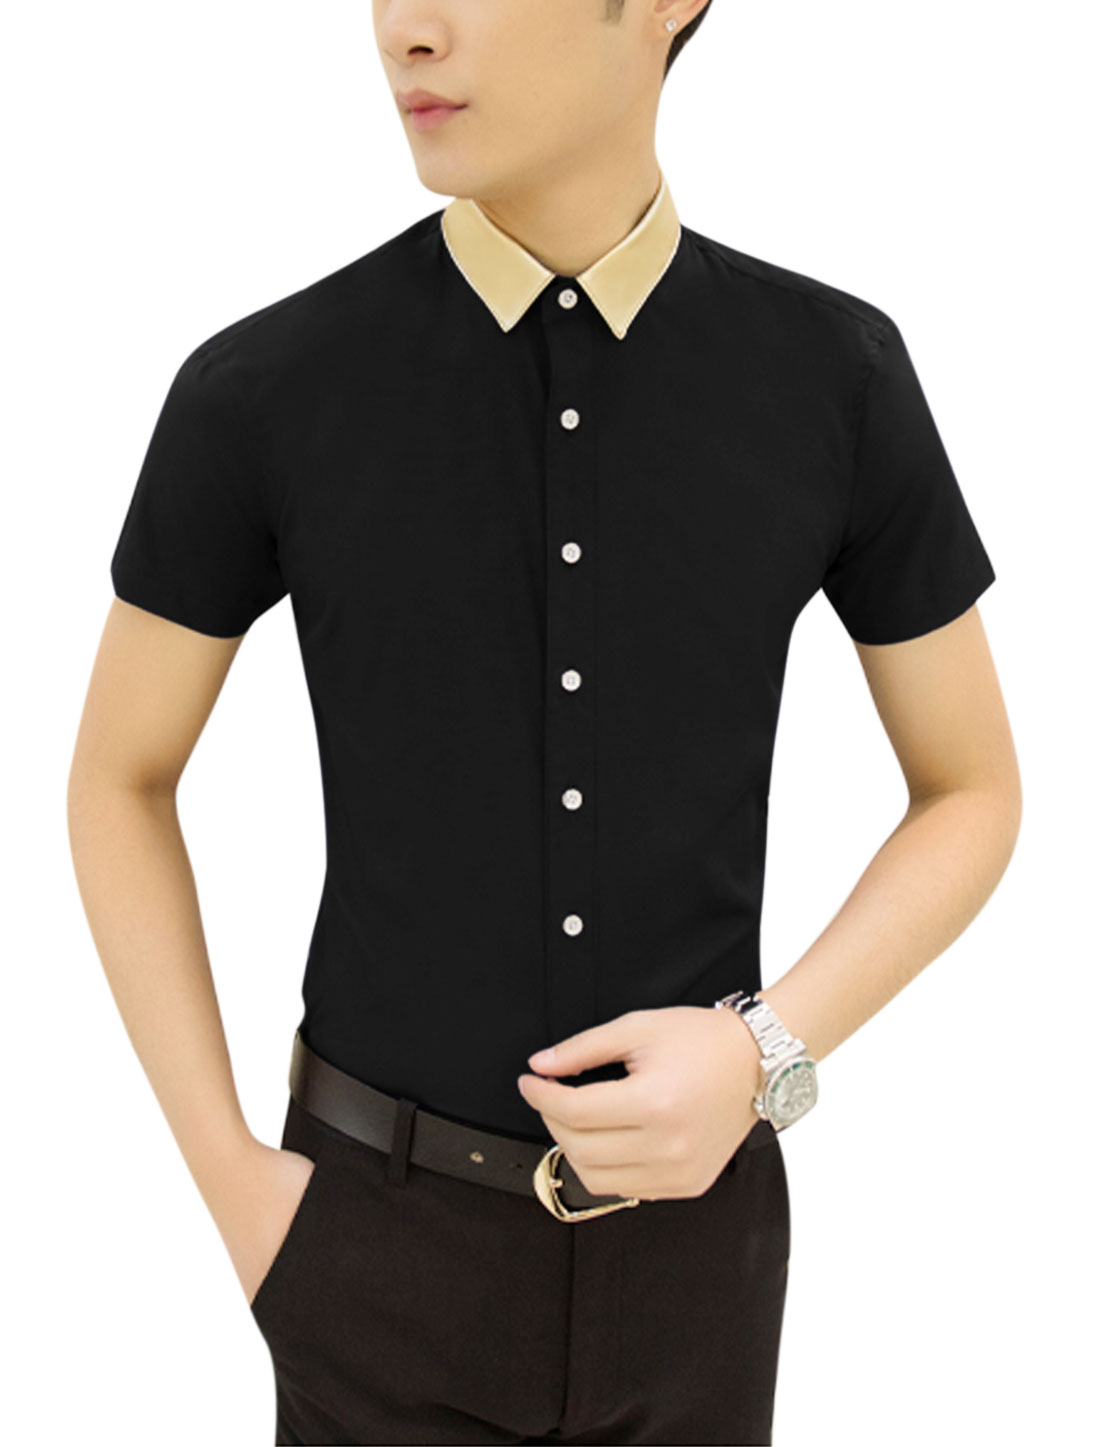 Man Point Collar Contrast Color Short Sleeves Button Down Shirt Black M